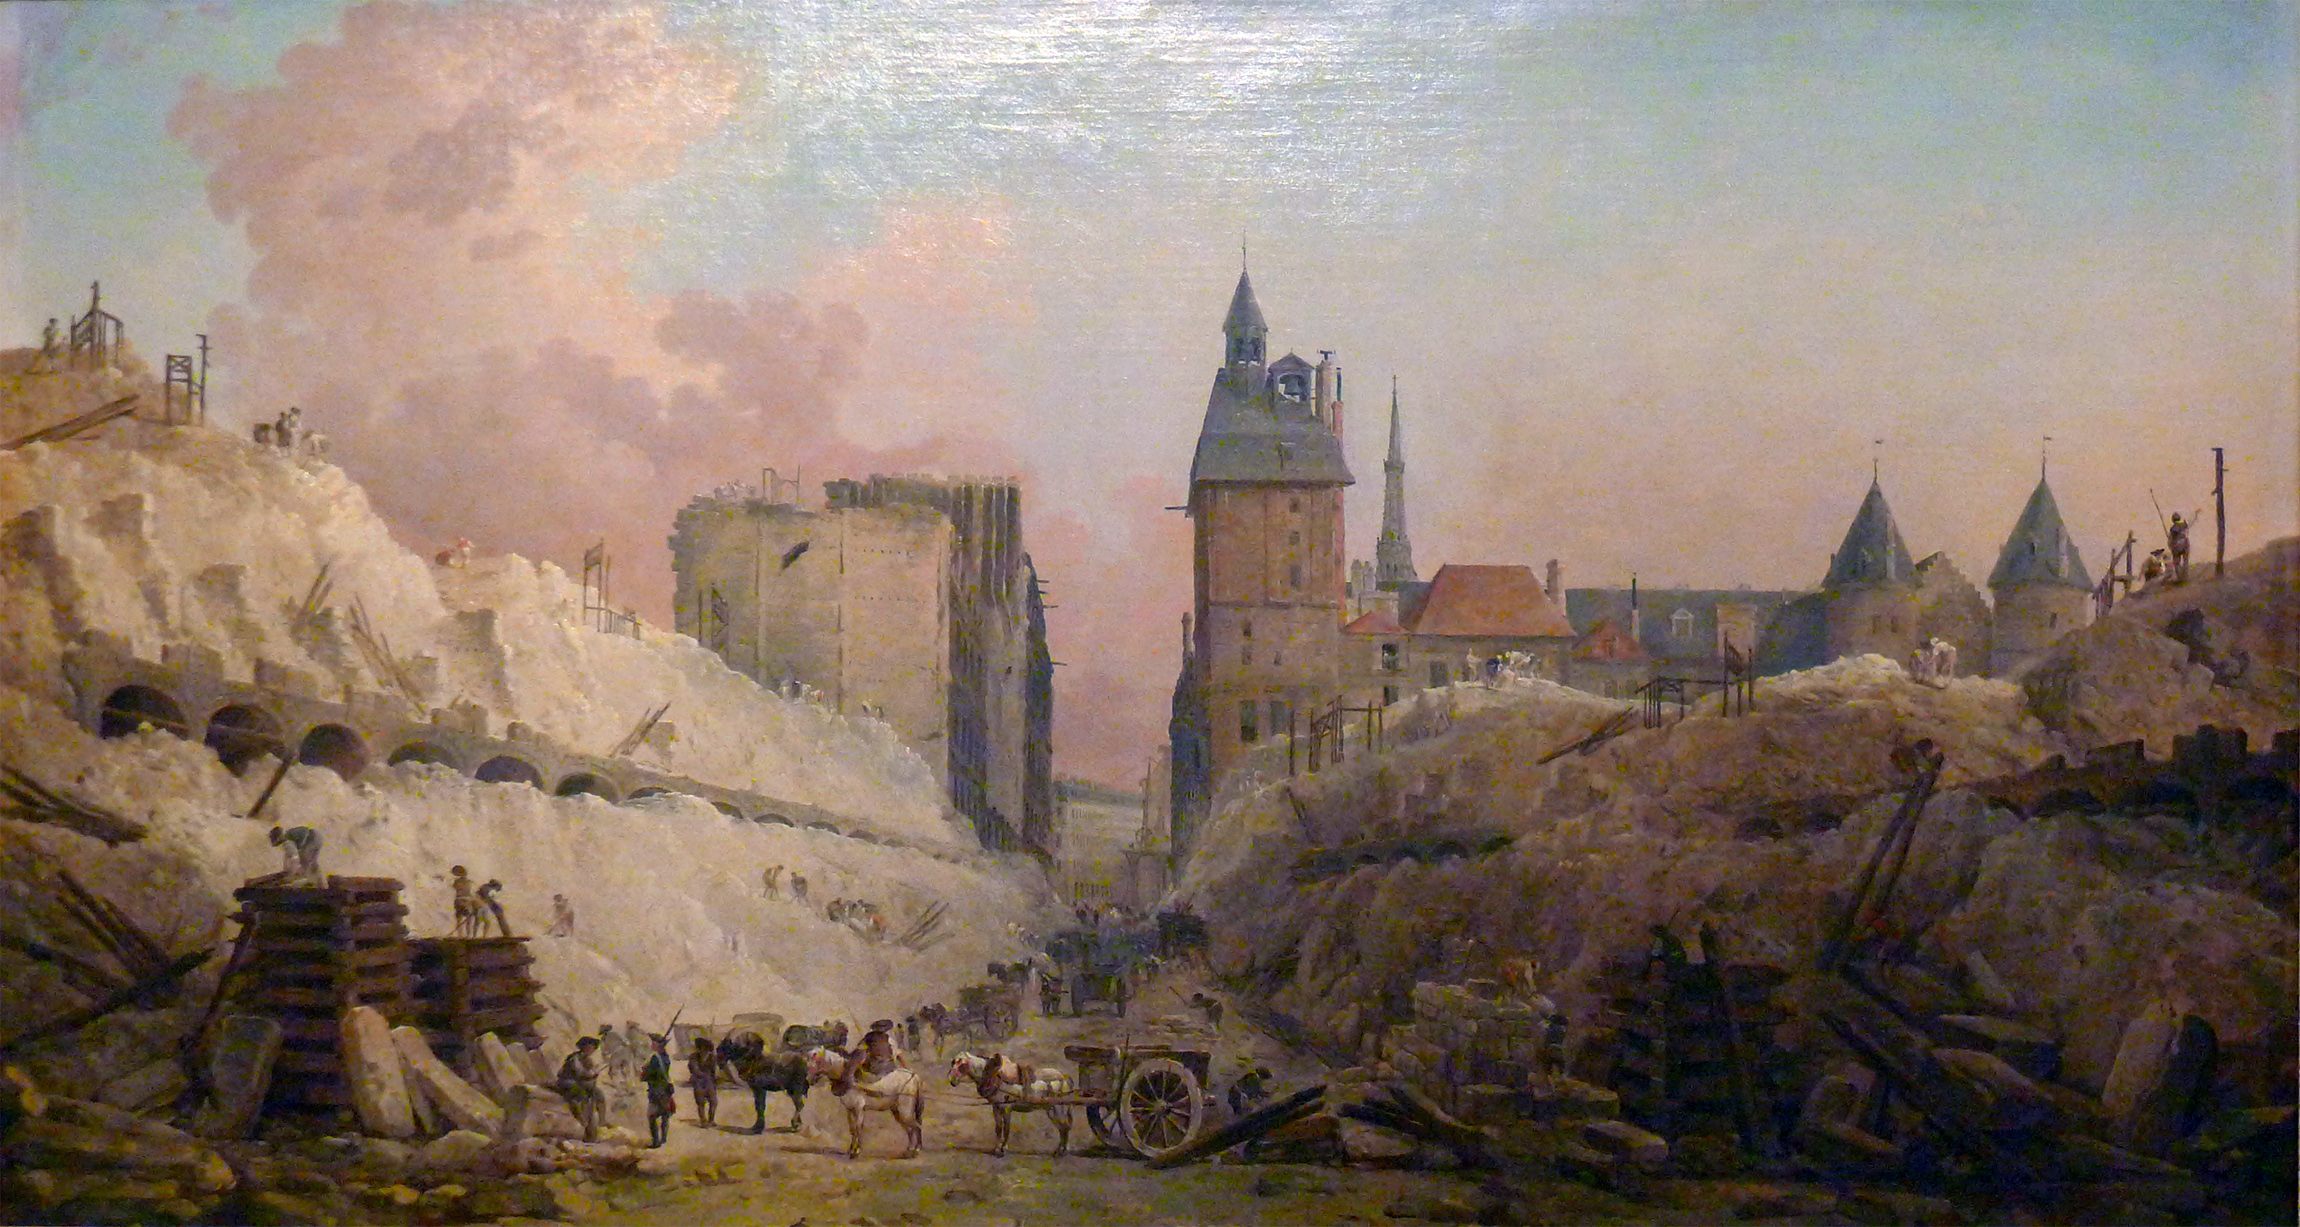 https://upload.wikimedia.org/wikipedia/commons/7/76/P1140649_Carnavalet_H_Robert_demolition_maisons_pont_au_Change_rwk.jpg